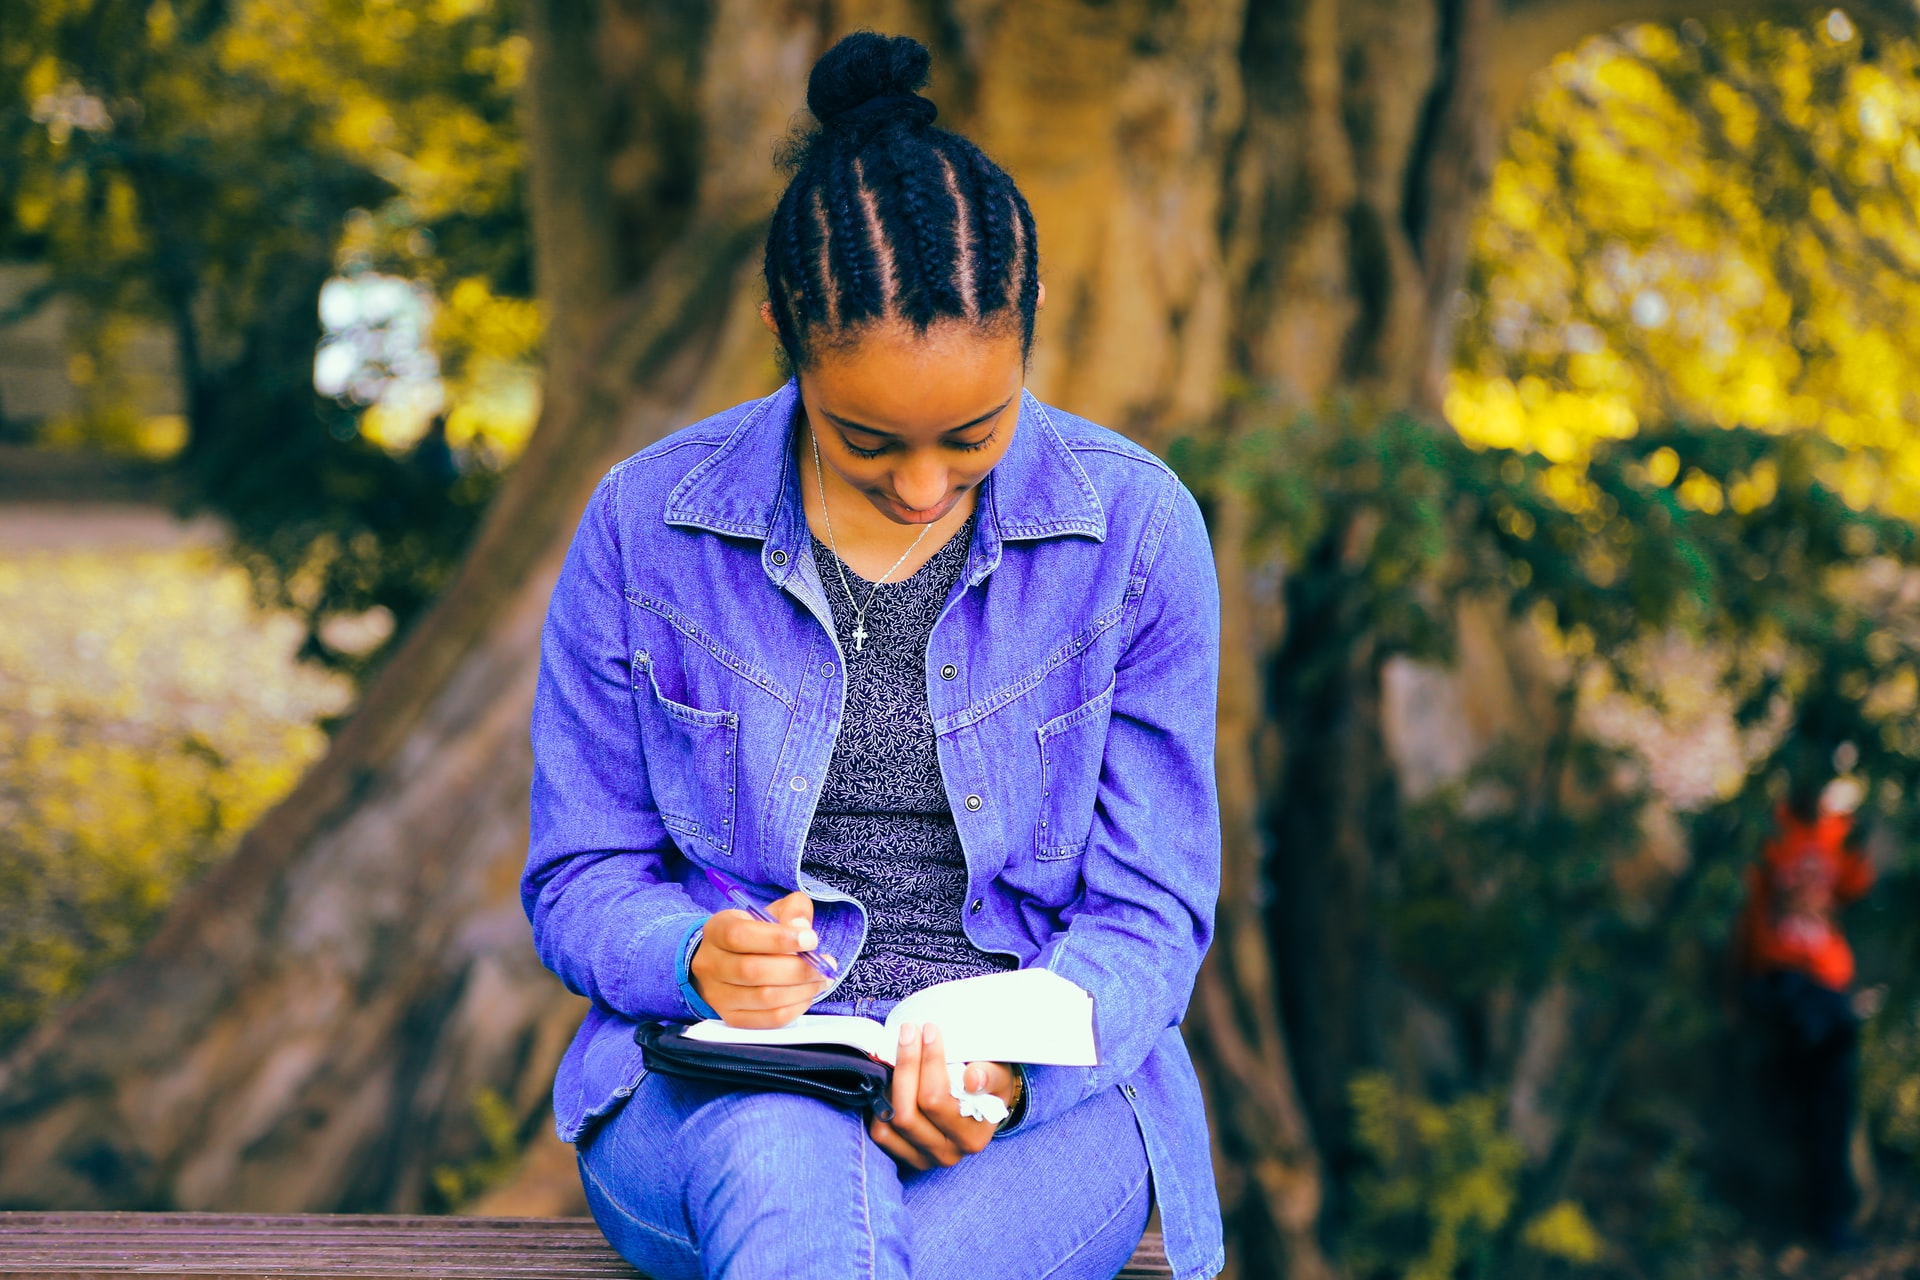 A Black woman wearing a blue shirt sitting on a bench and writing in a journal